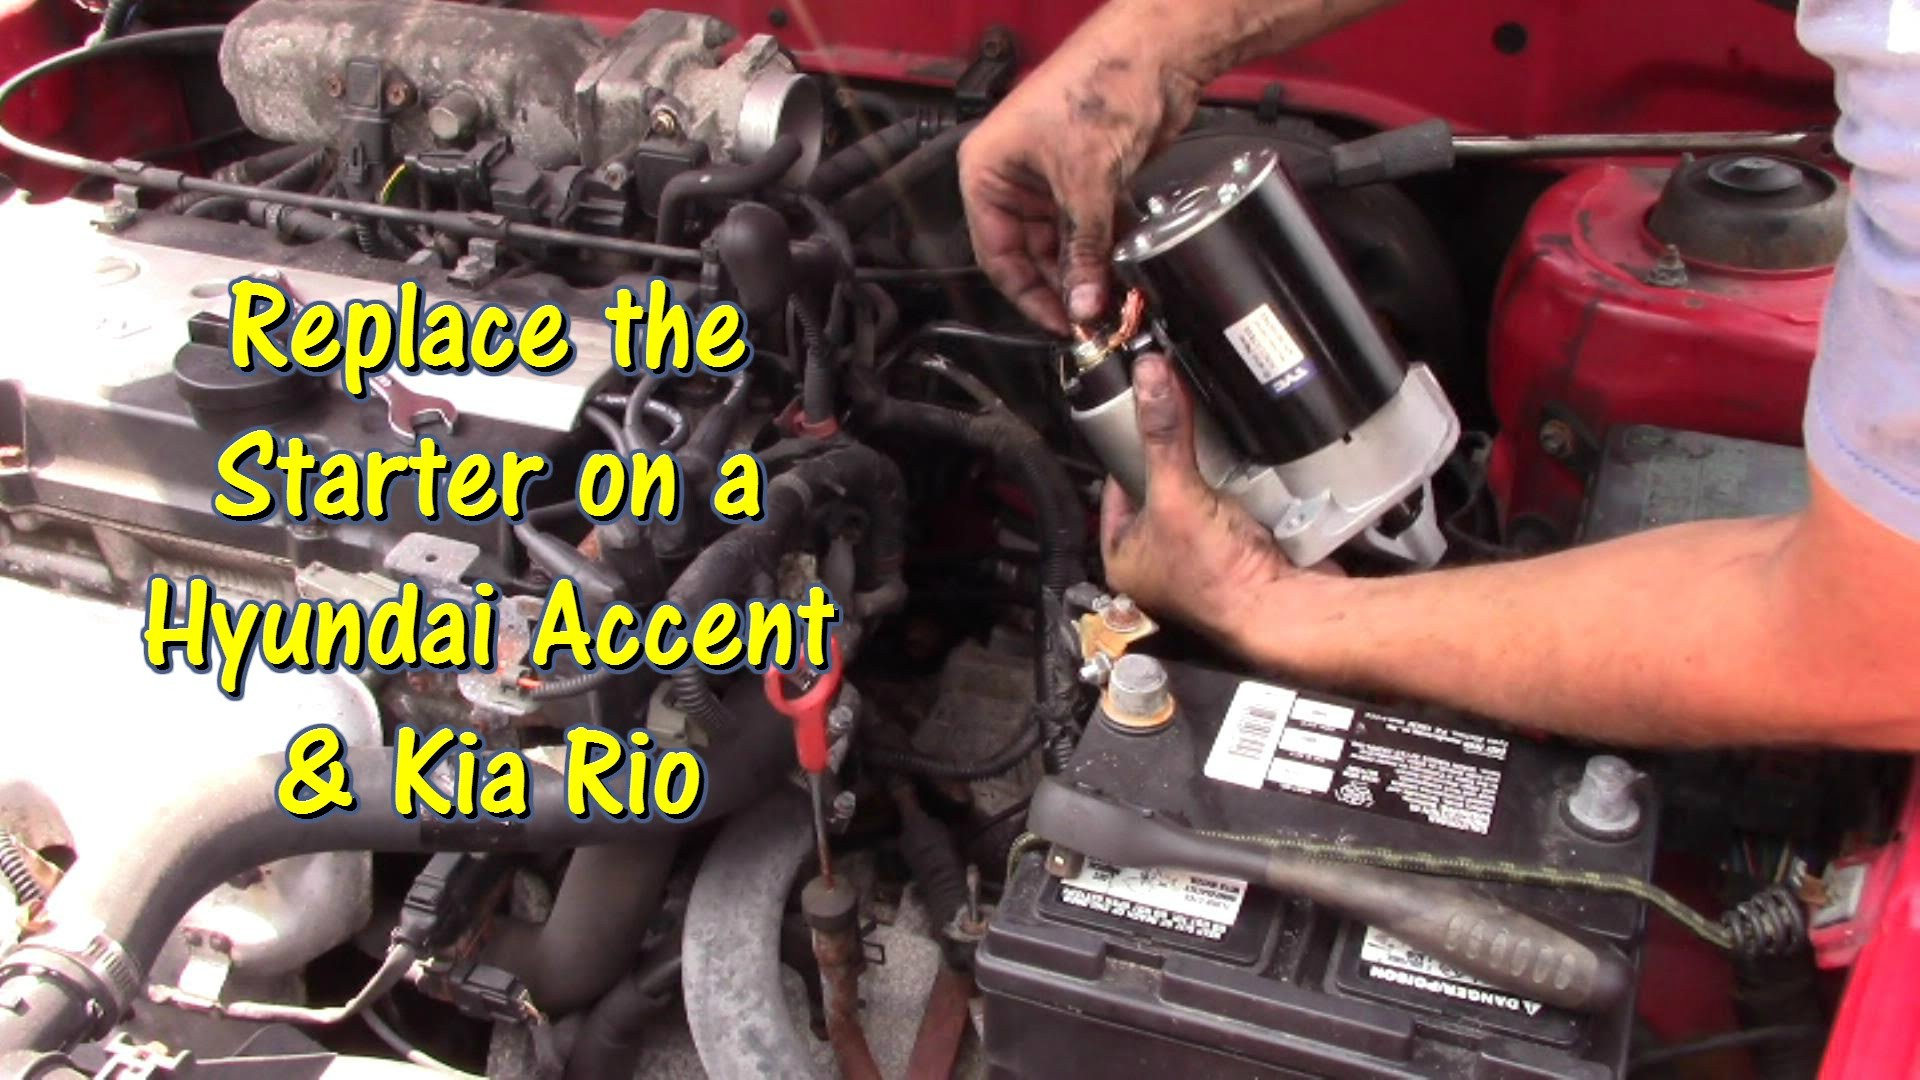 2009 Hyundai Accent Engine Diagram How to Replace A Starter On A Hyundai  Accent & Kia Rio by